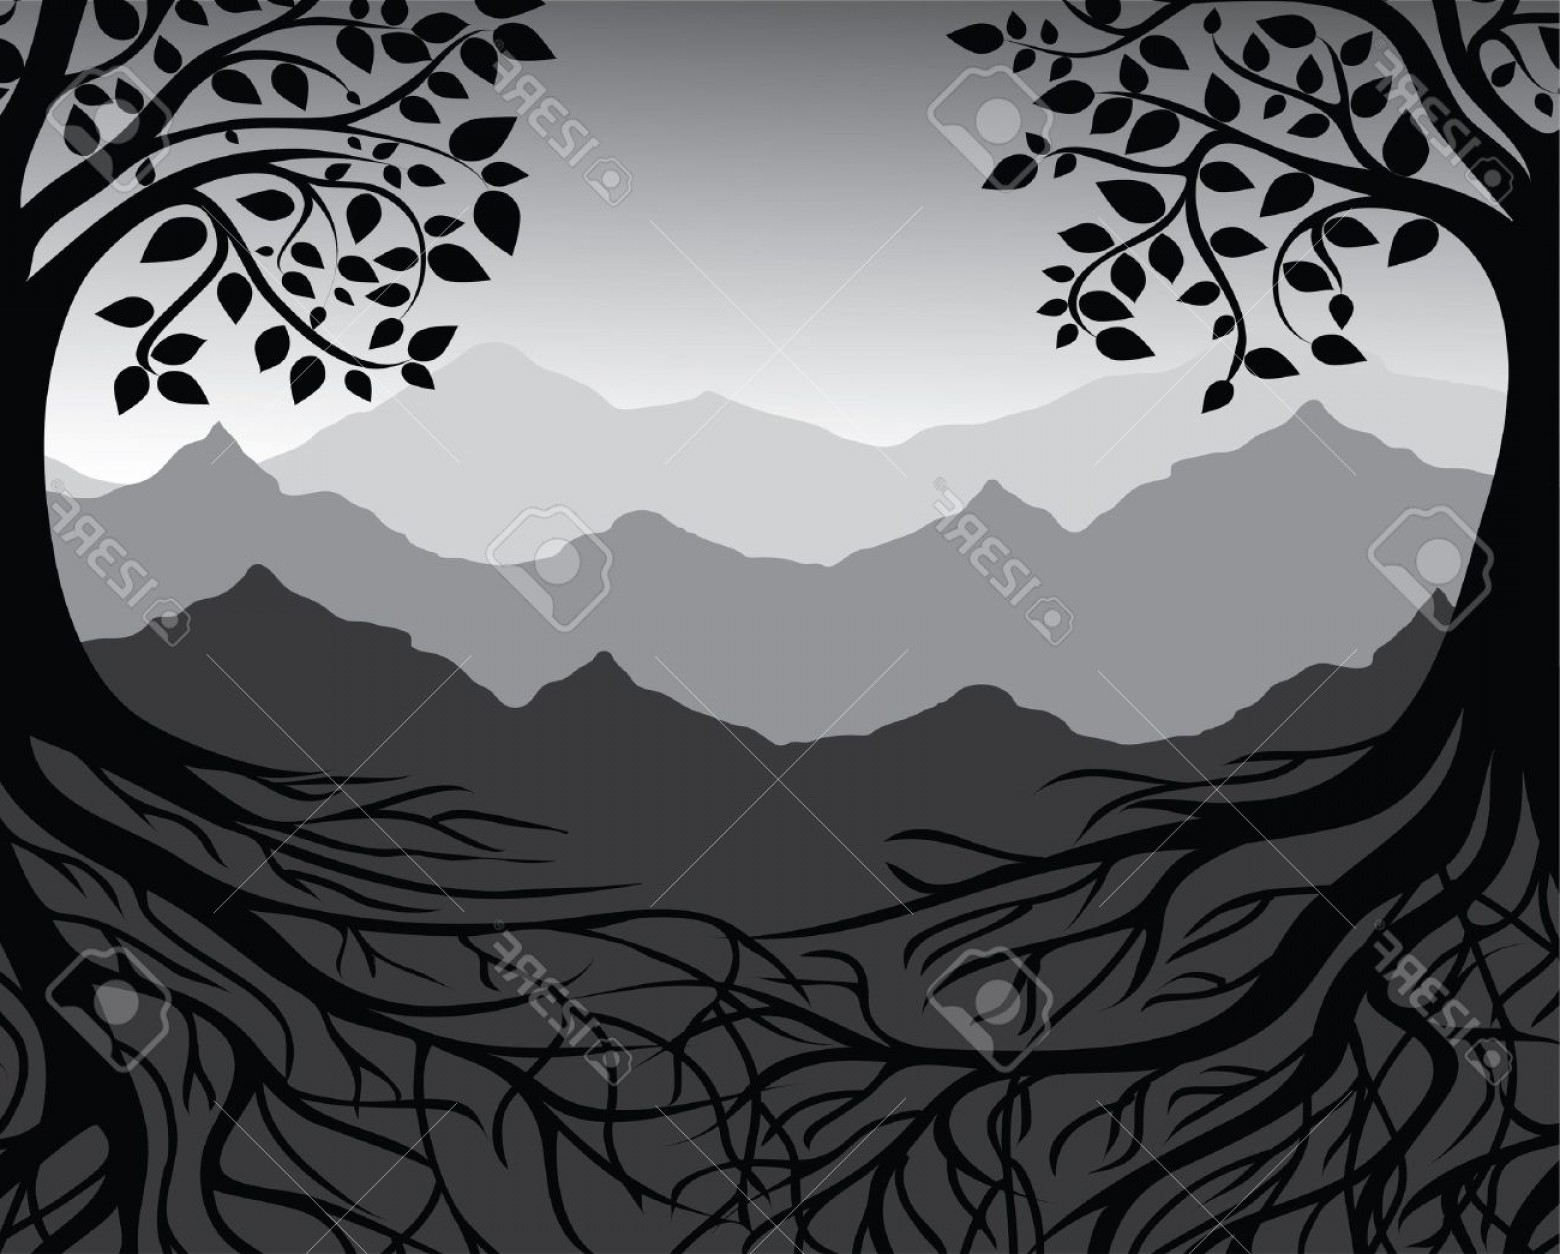 White Mountain Silhouette Vector Free: Photobranch And Roots Of Tree Black And White Mountain